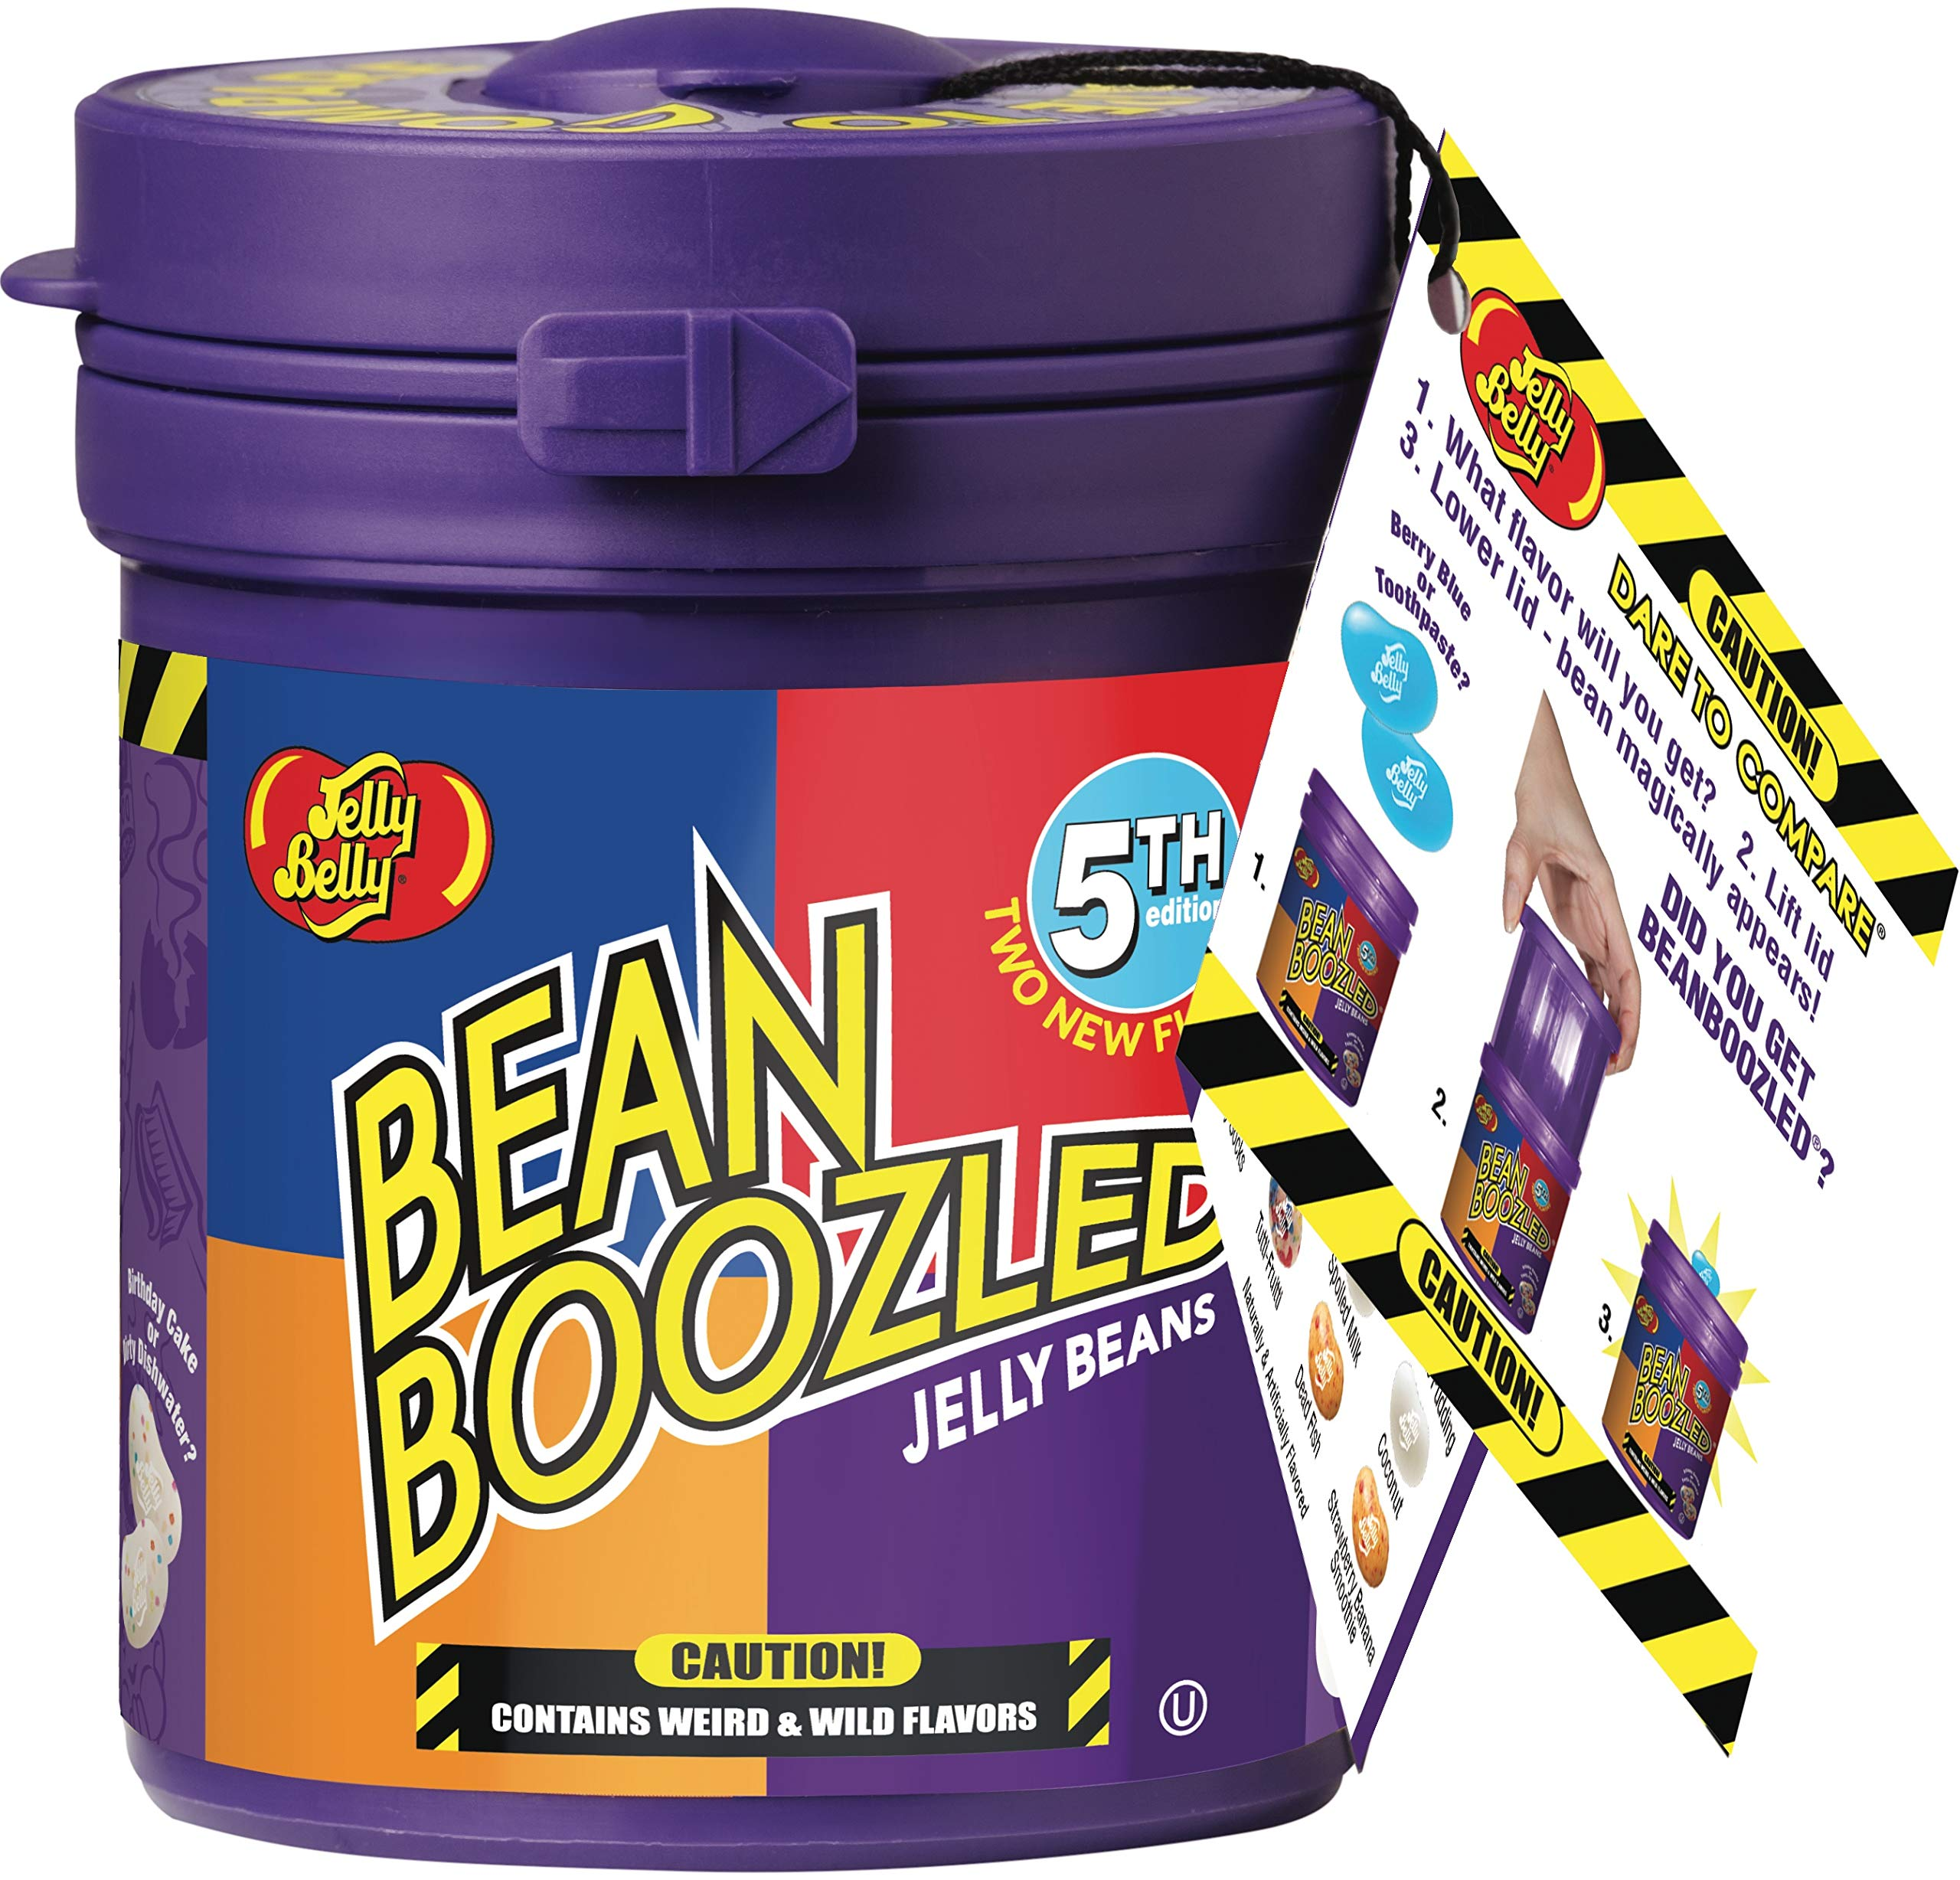 Jelly Belly Beanboozled Mystery Bean Jelly Belly Set With Refill Box by Jelly Belly (Image #3)